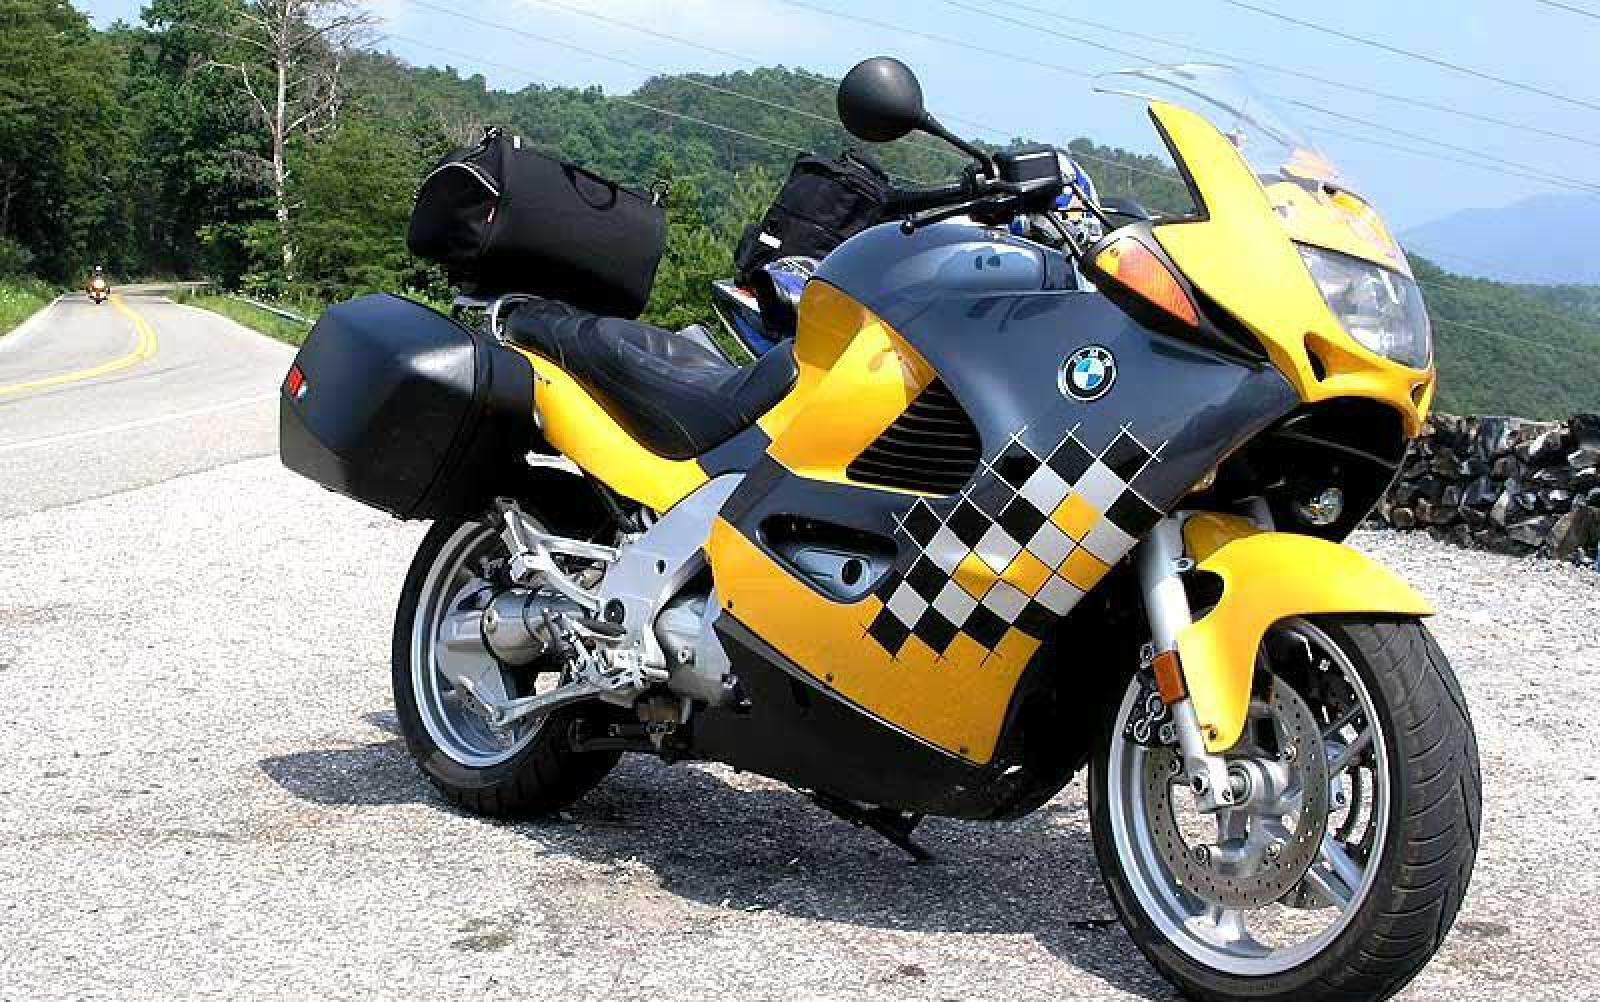 BMW K1200RS 1999 images #43960